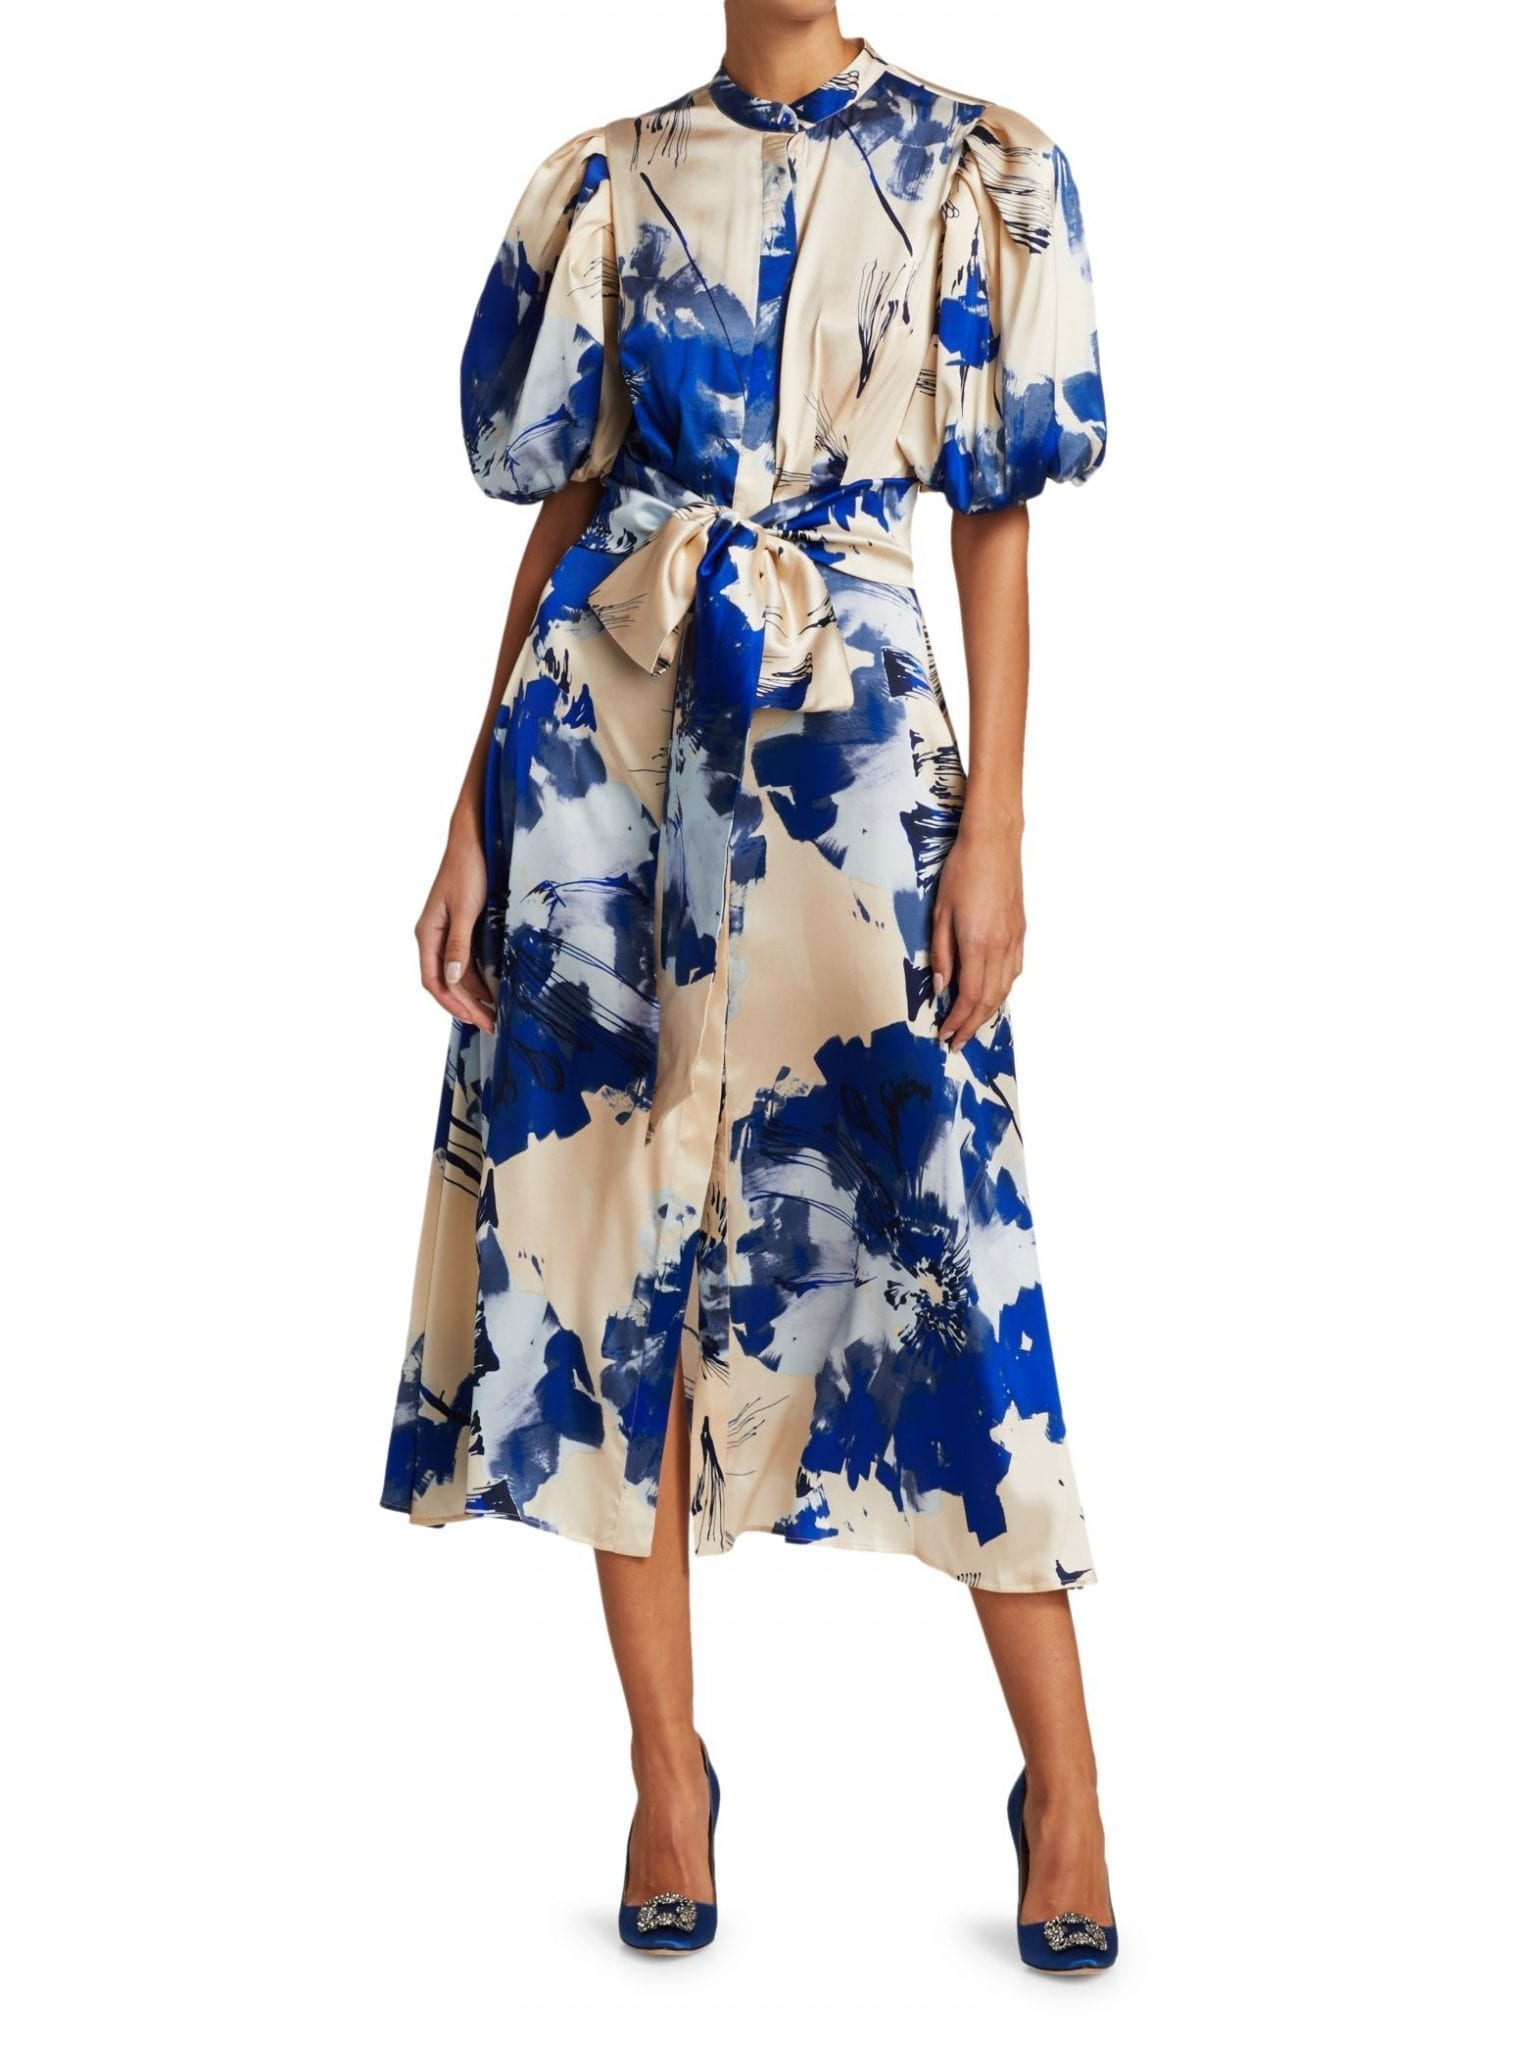 SILVIA TCHERASSI Ophelia Puff Sleeve Midi Dress